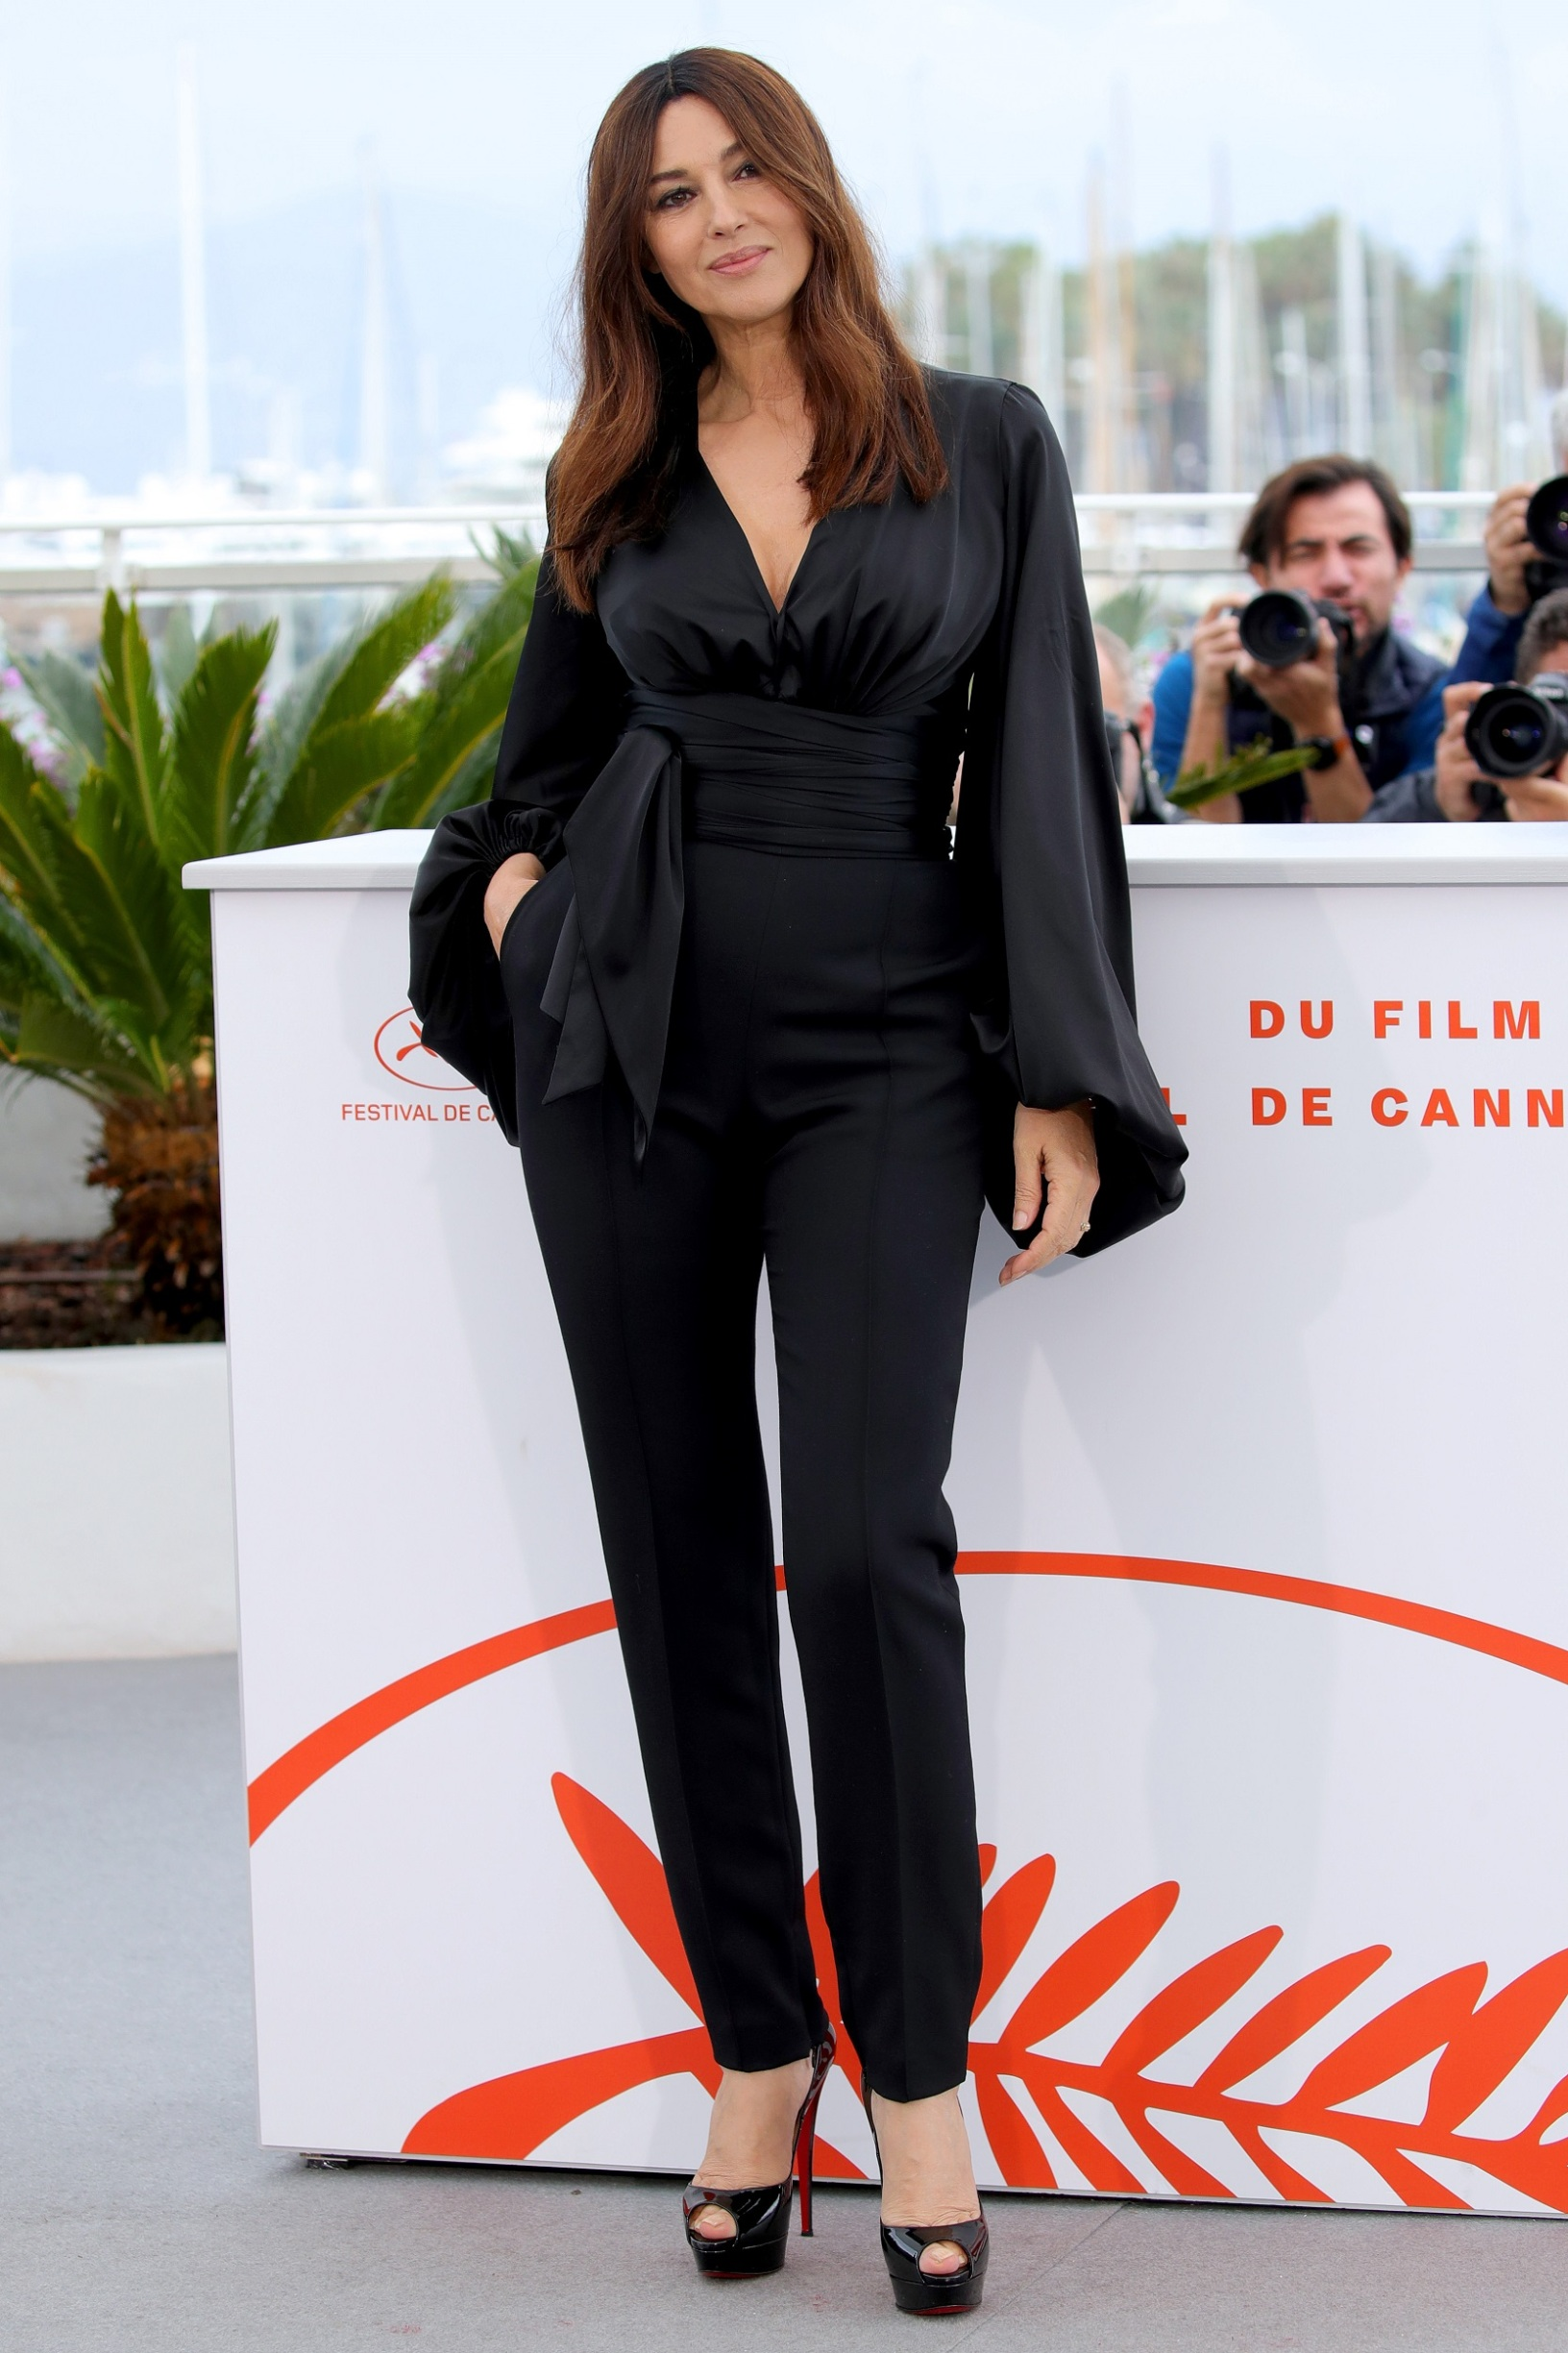 CANNES, FRANCE - MAY 19: Monica Bellucci attends the photocall for